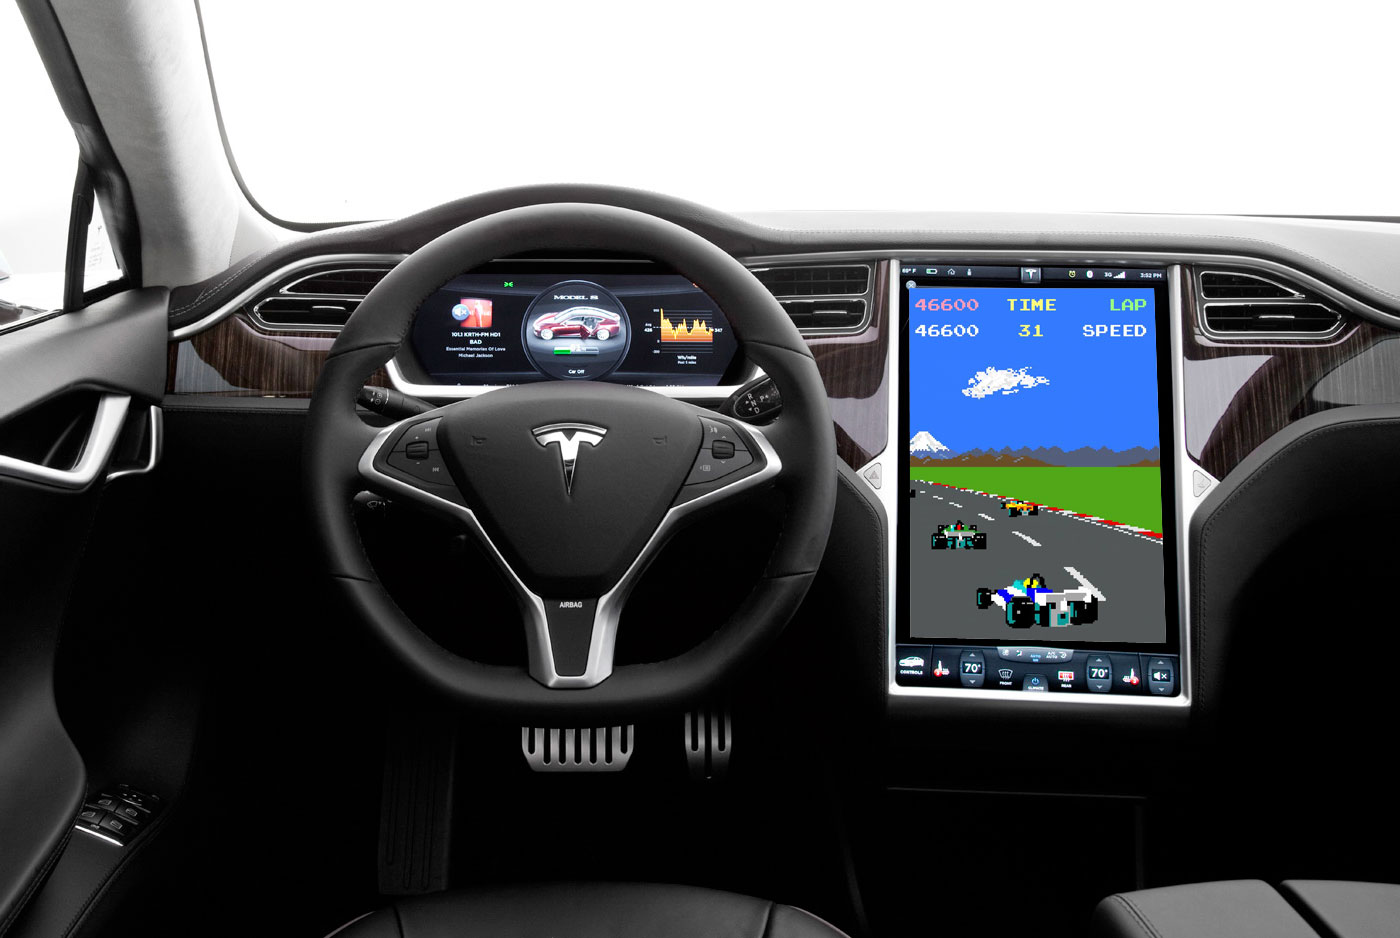 Classic video games on Tesla